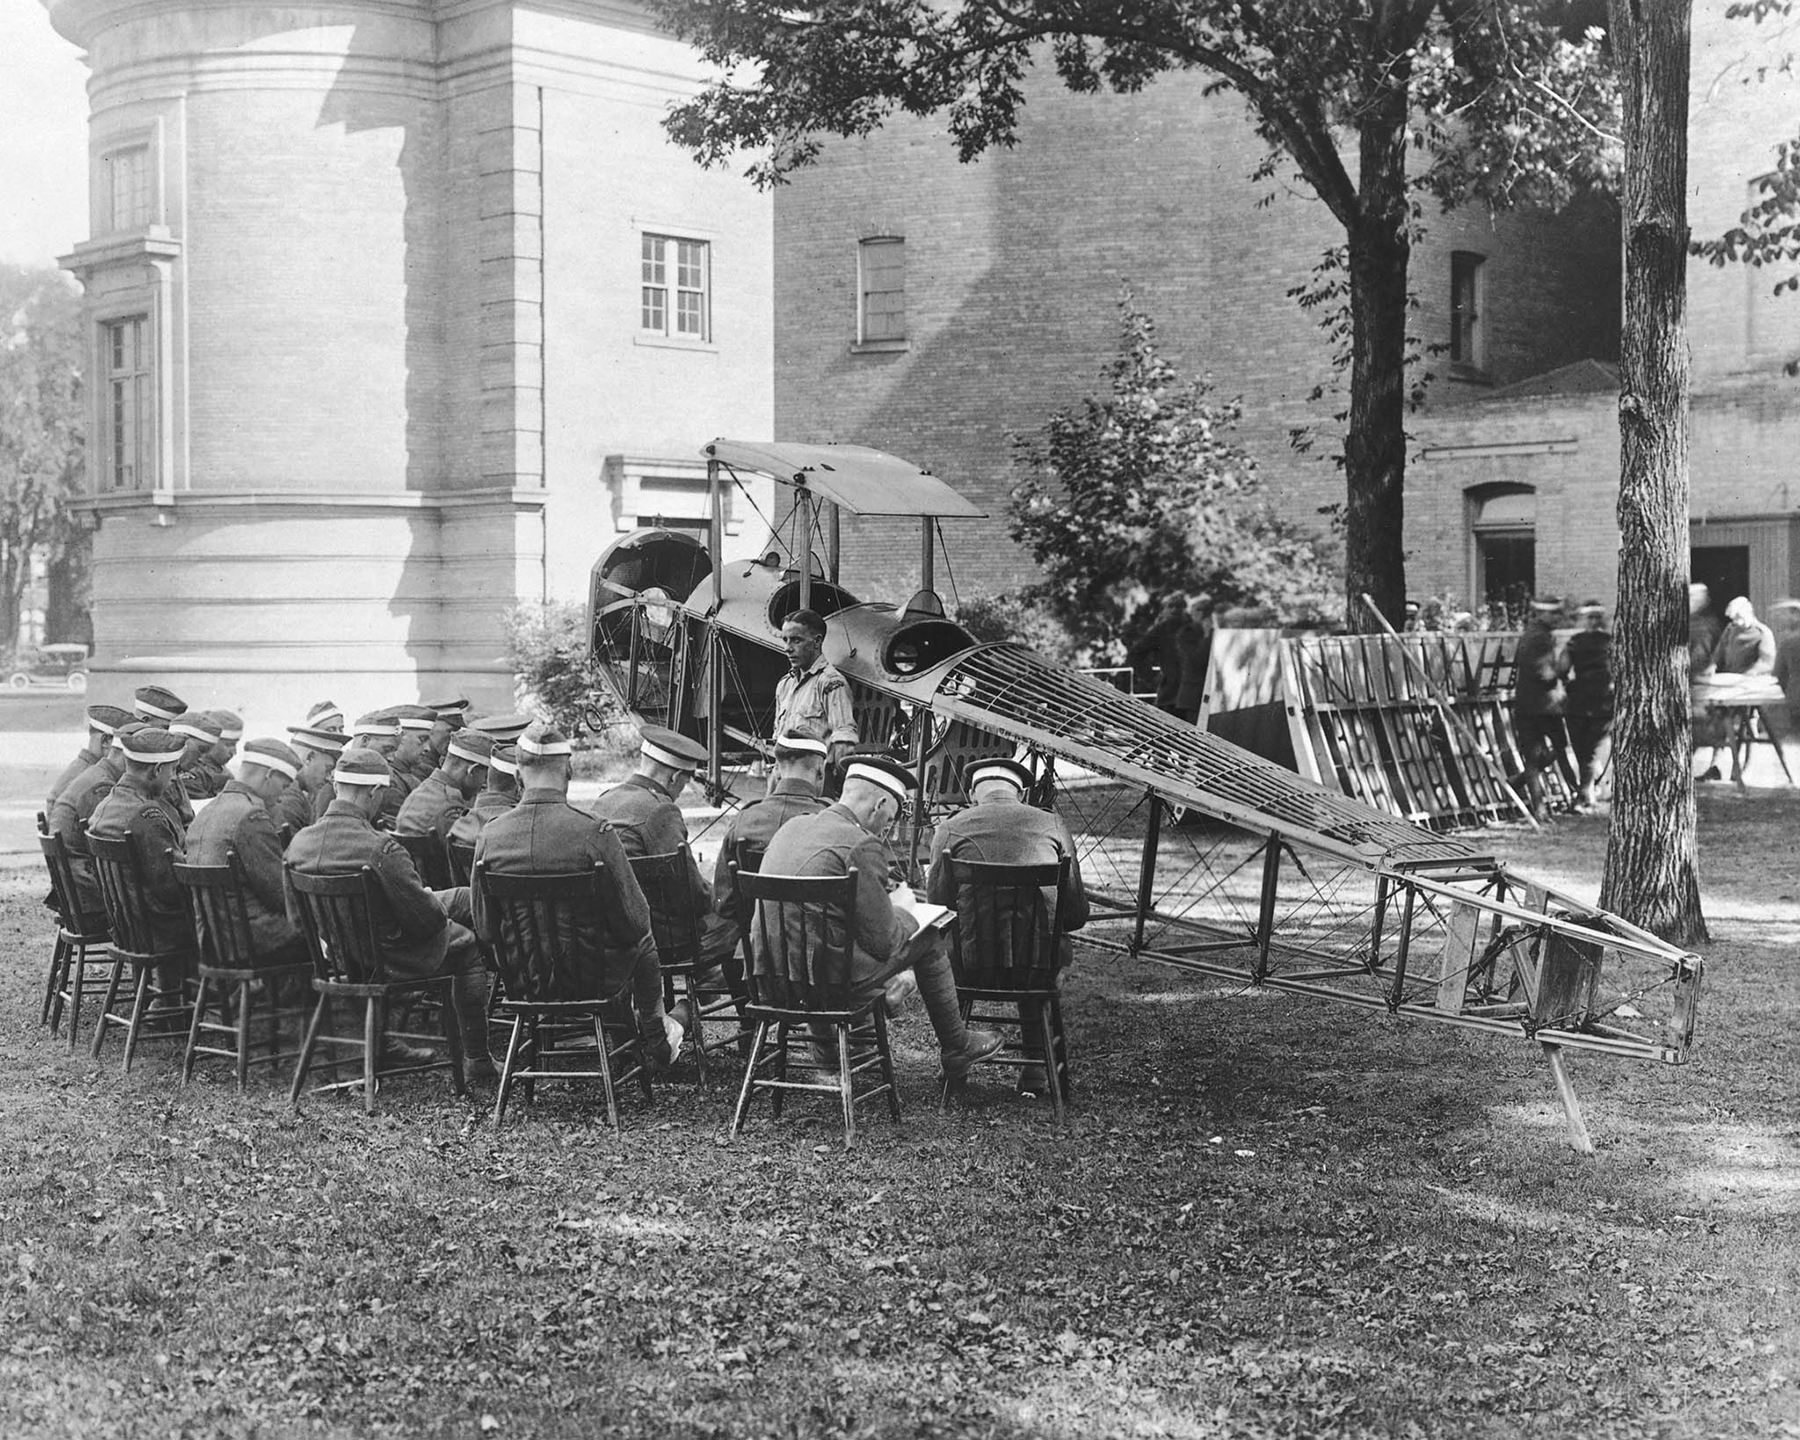 Students at the School of Aeronautics, located at the University of Toronto, enjoy an outdoors lecture on aircraft construction. PHOTO: DND Archives, RE-19065-13